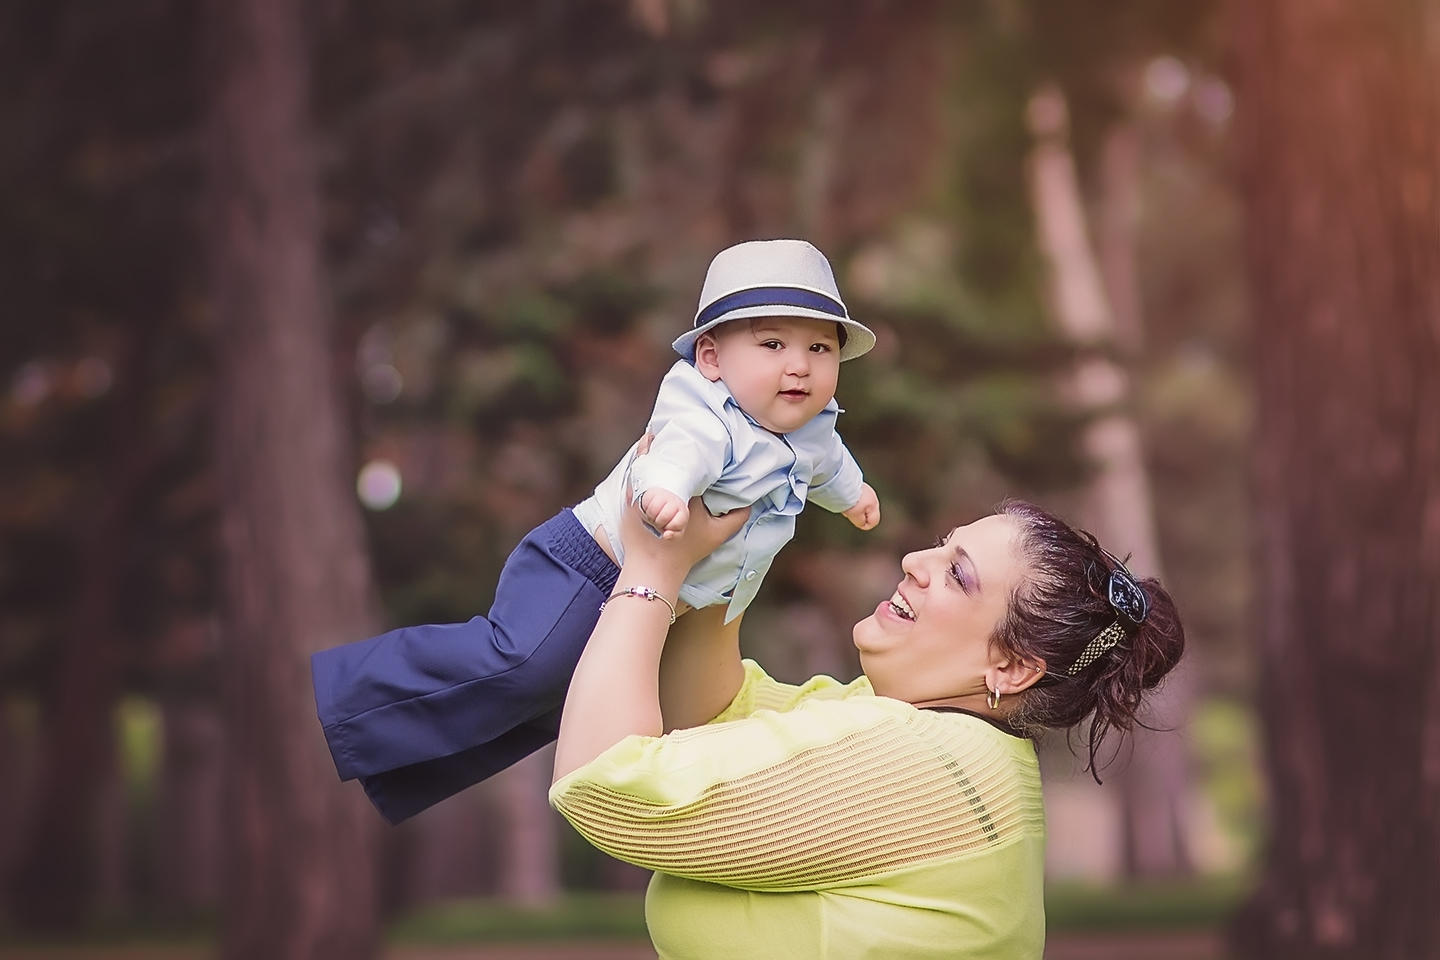 mom holding up baby boy